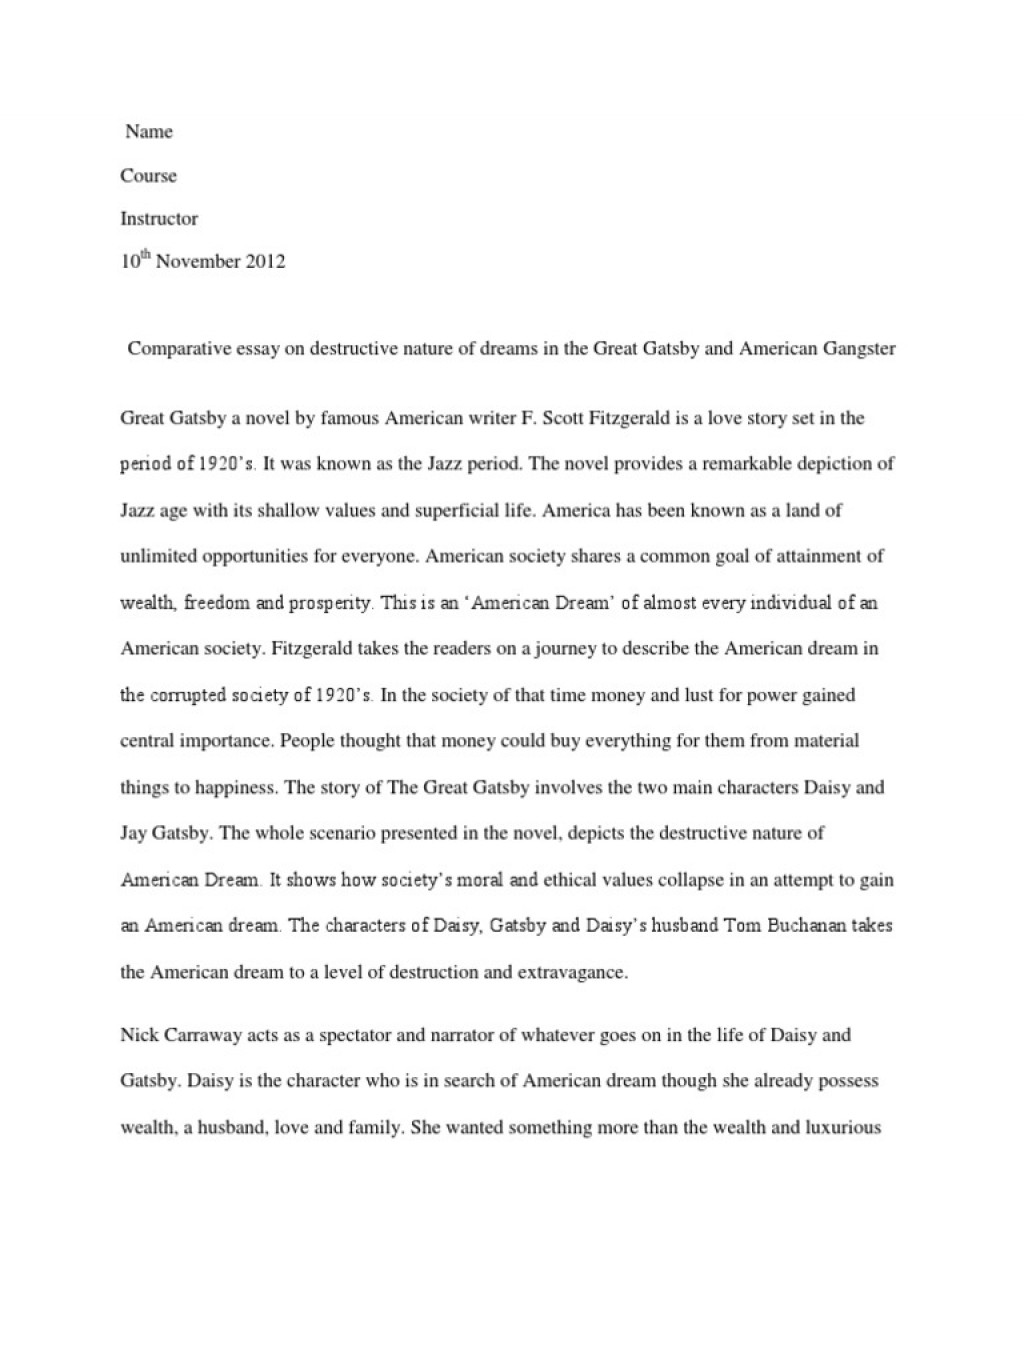 001 Essay Example The American Dream In Great Gatsby Comparative On Destructive Nature Of Dreams  5884869ab6d87f259b8b49e2 Rare Corruption DeclineLarge